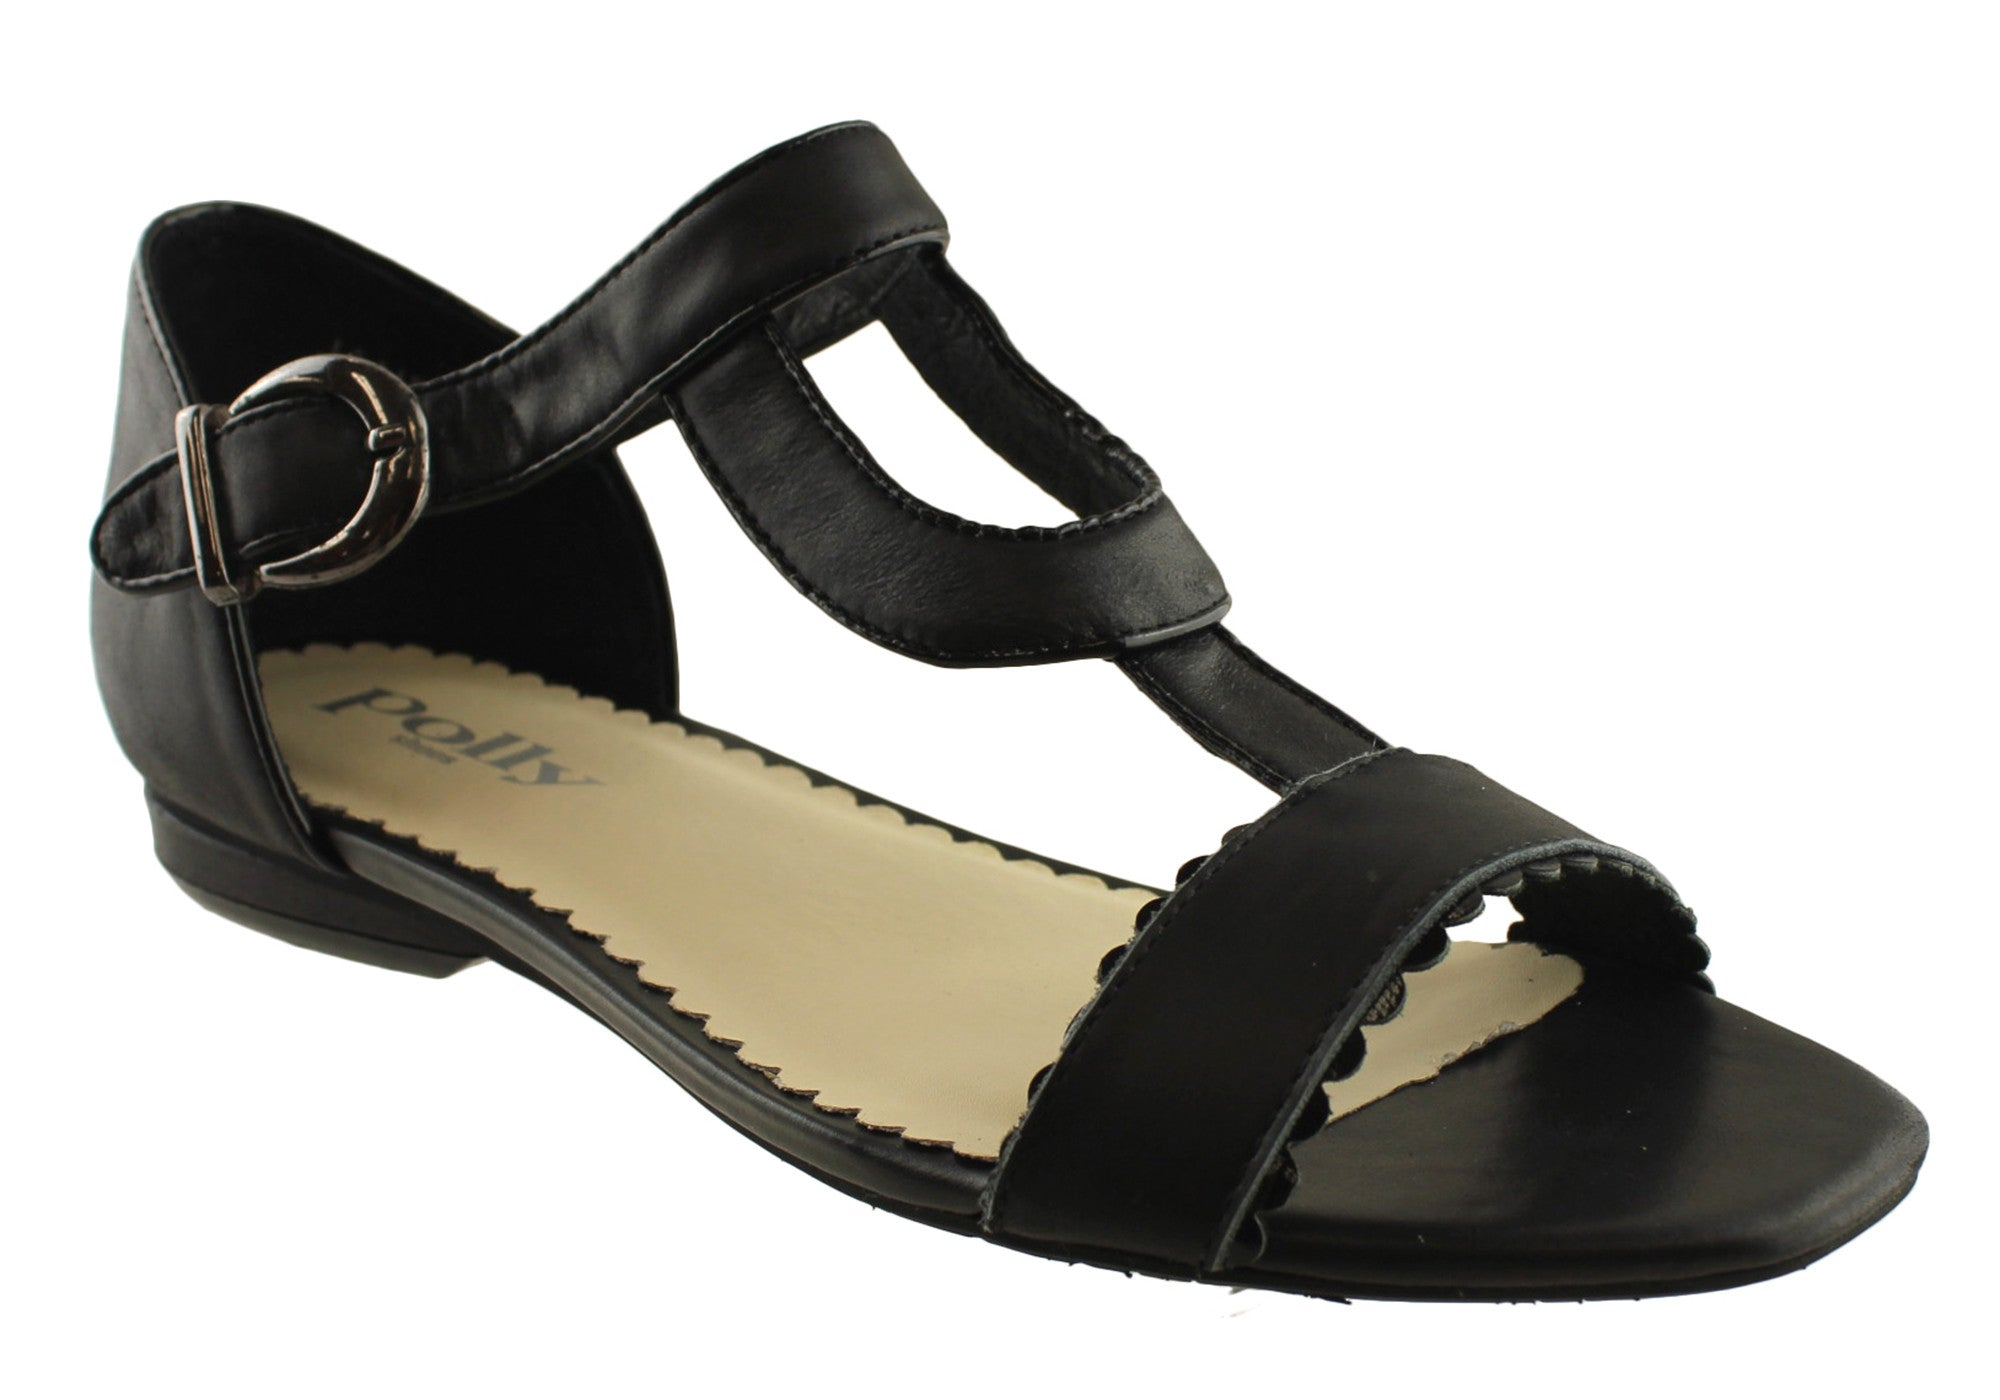 Jane Womens Leather Sandal by Polly Shoes